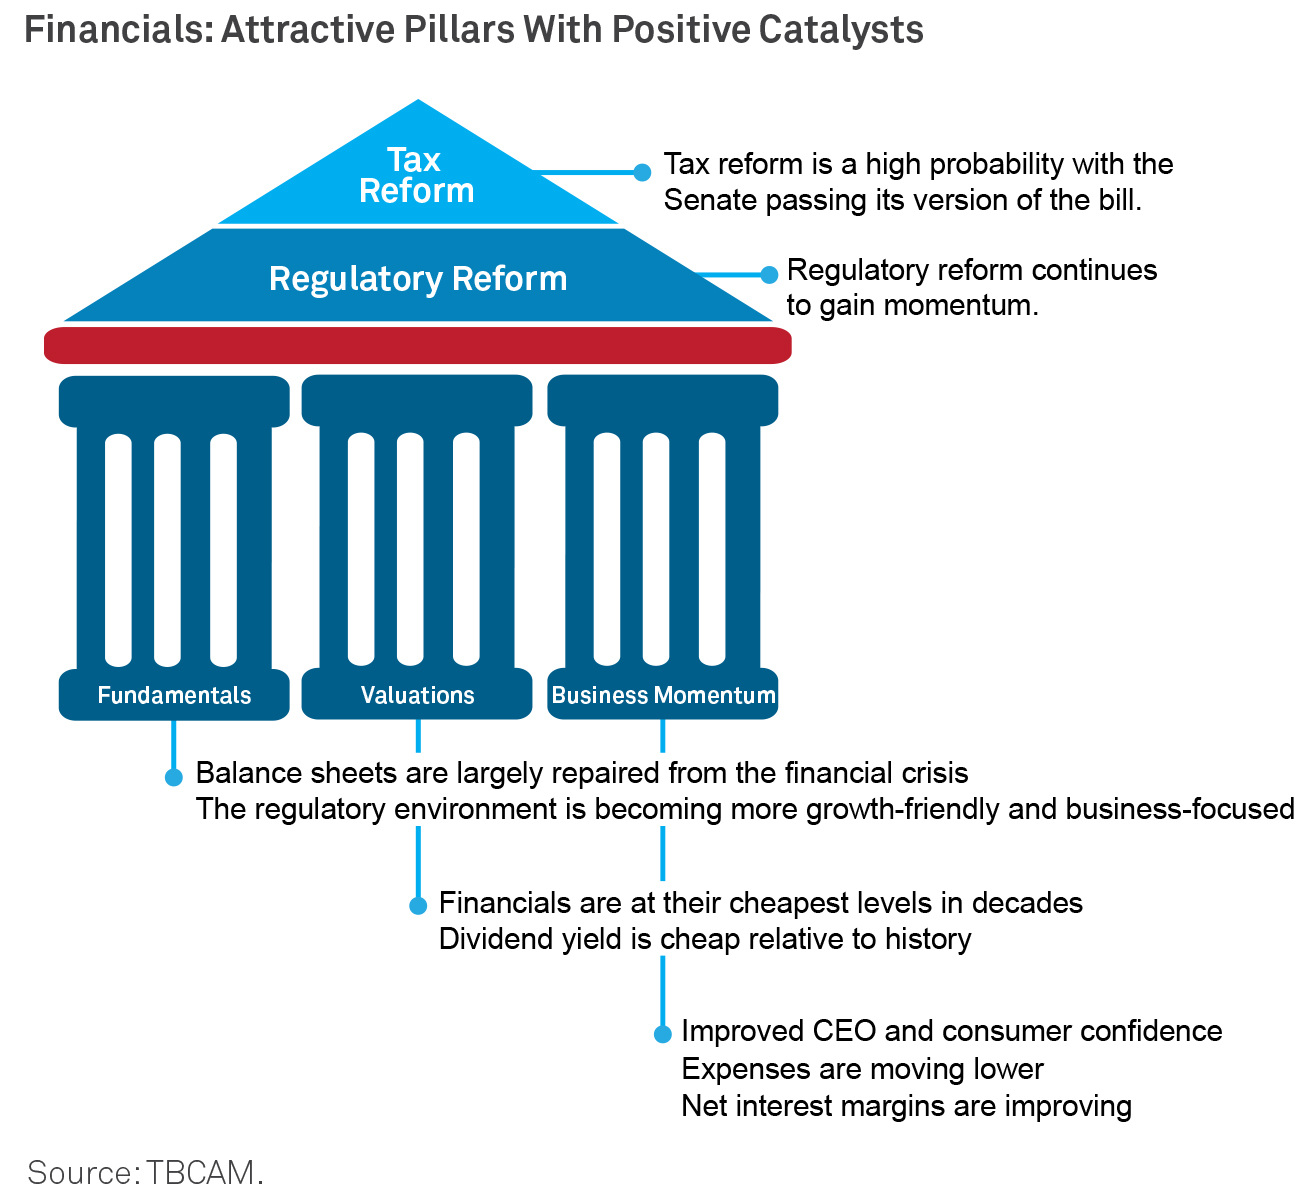 Financials: Attractive Pillars With Positive Catalysts